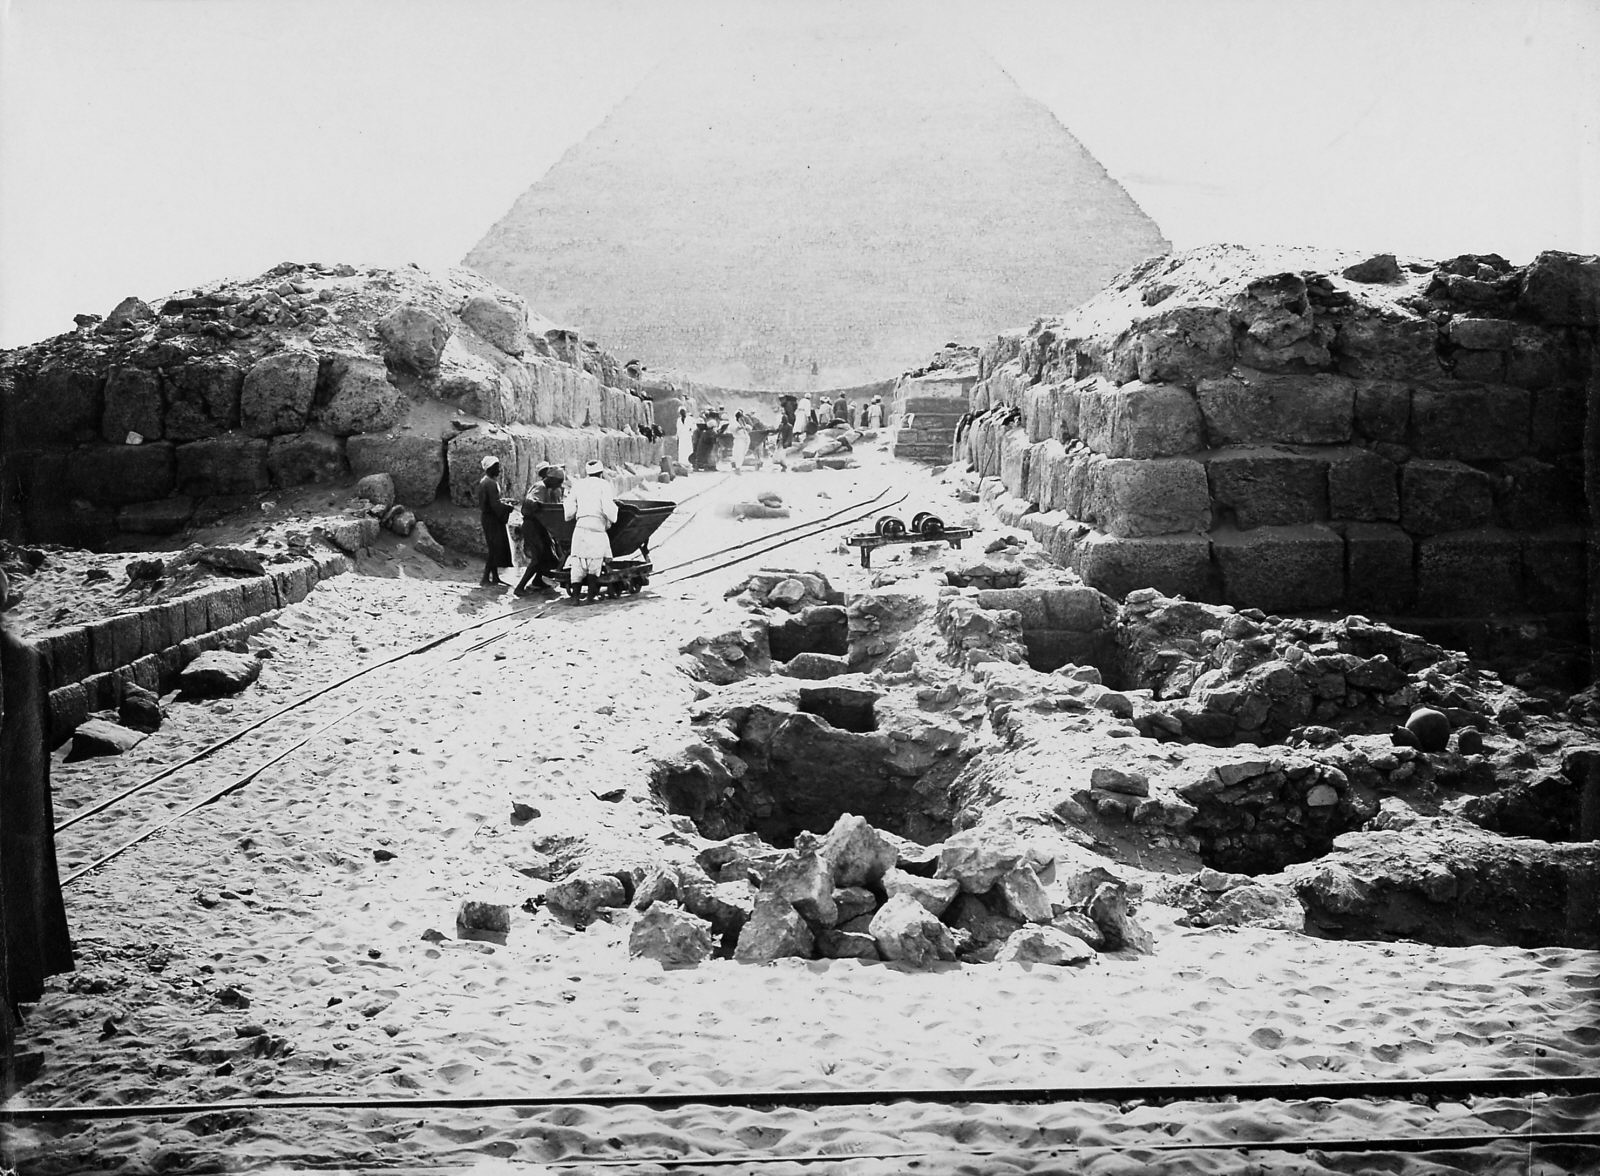 D 116 and mastaba of Nu(?) (foreground right), D 117 (foreground left), looking south along street (III) between G 4360 (= III n, to west) and G 4460 (= IV n, to east). Photo ID KHM_o_neg_nr_0539, photo and description courtesy of the Giza Archives maintained by Harvard University and the Museum of Fine Arts Boston, online at Digital Giza.